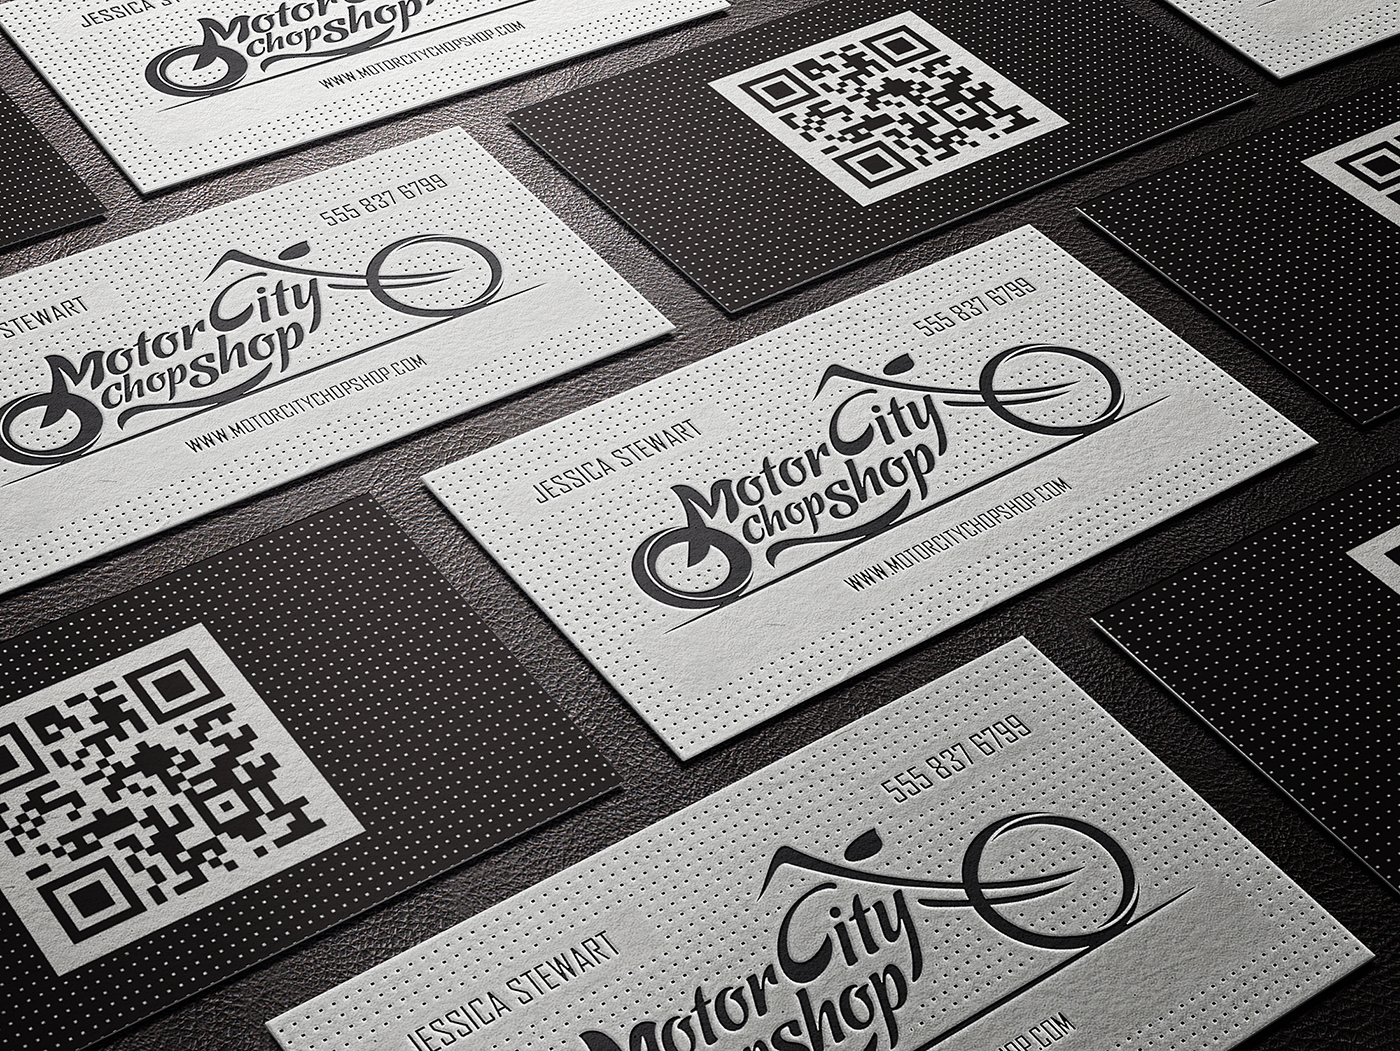 Letterpress business cards inspiration cardfaves motor city chop shop business cards reheart Gallery